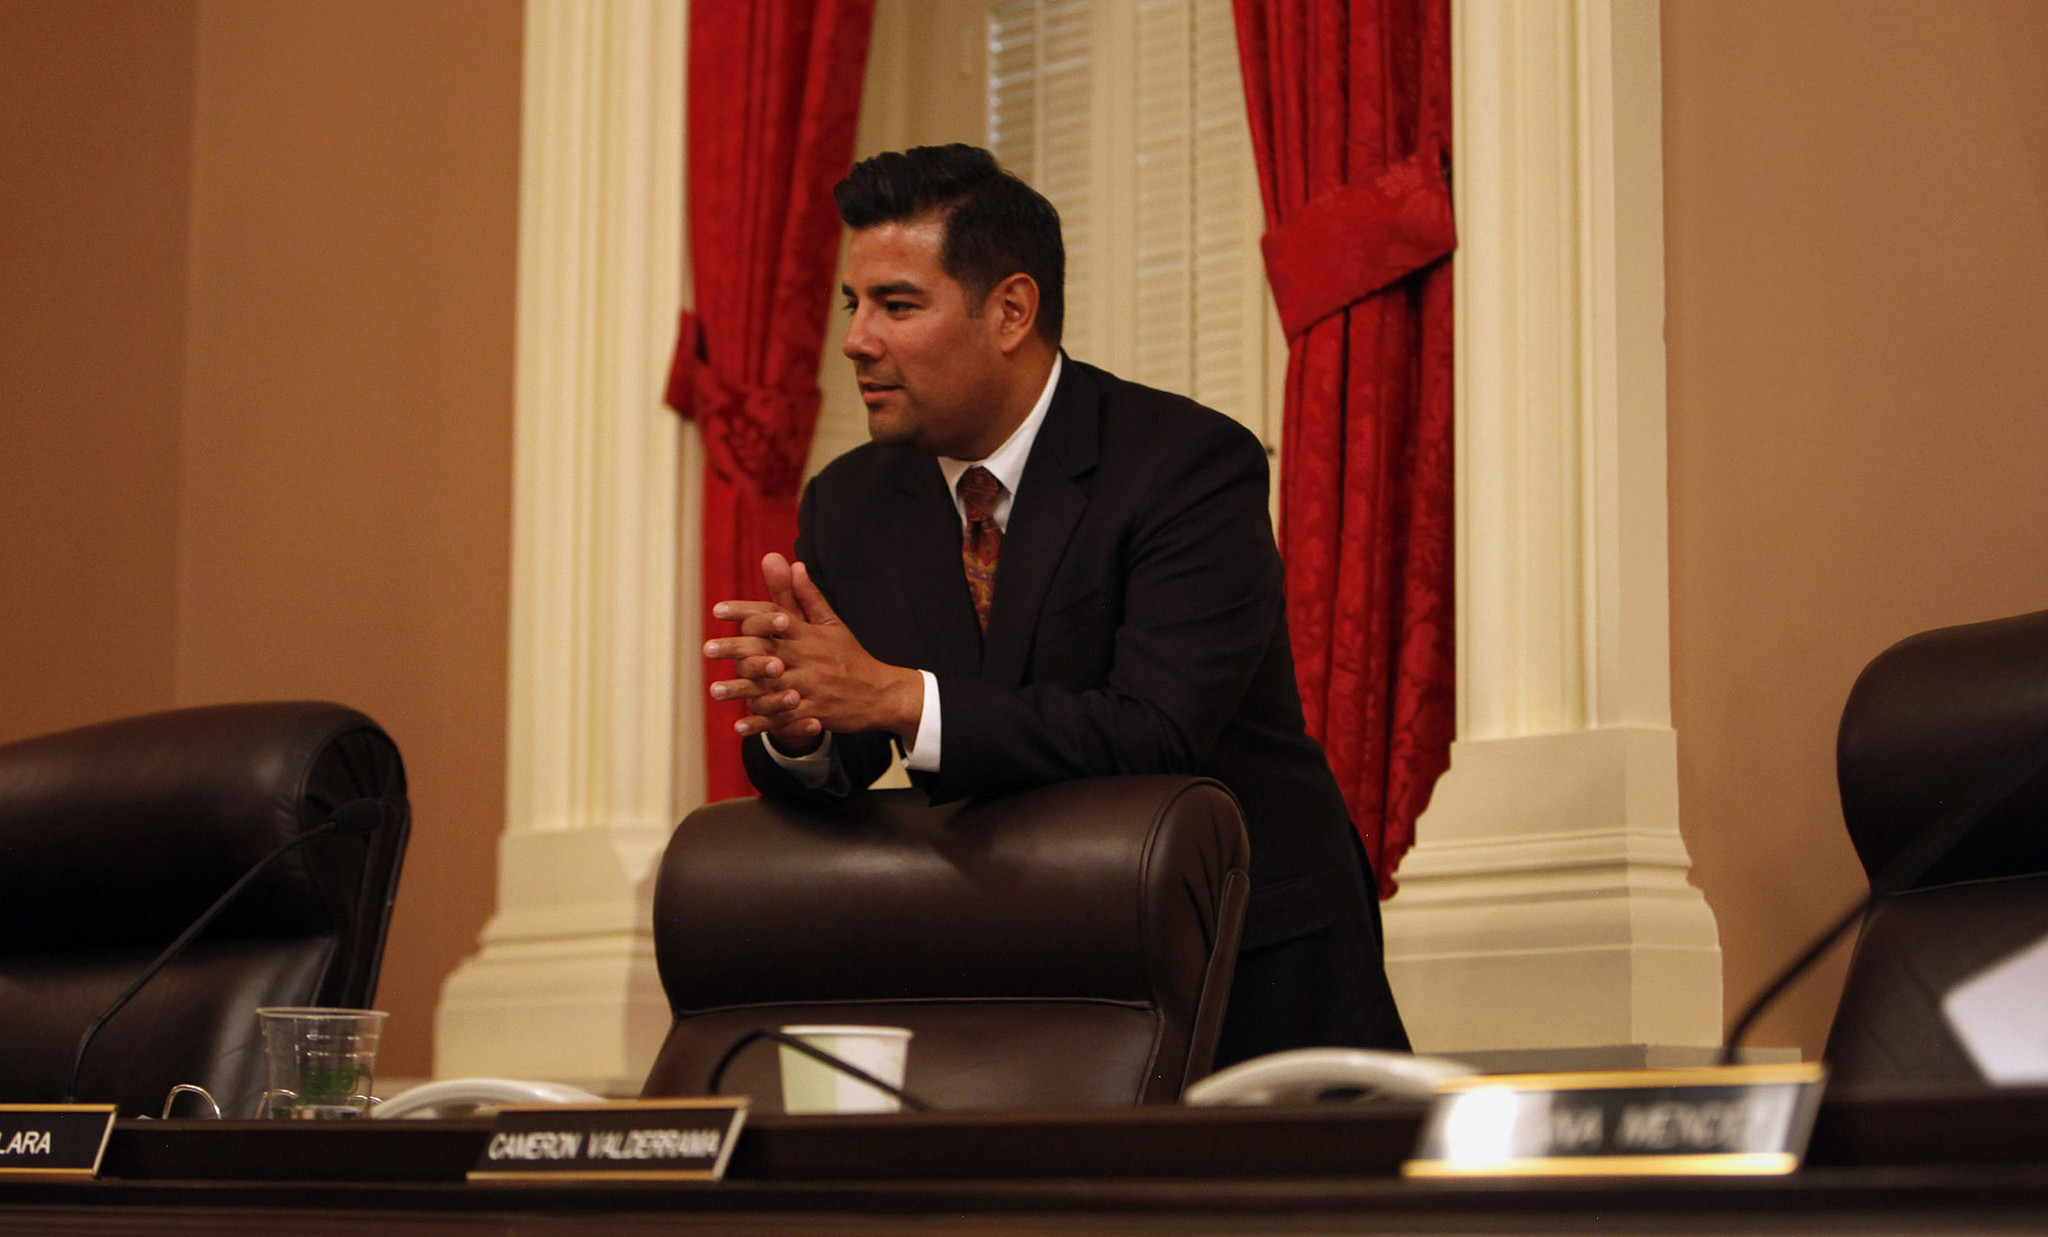 Sen. Ricardo Lara (D-Bell Gardens) rests on his chair during a break in a Senate Rules Committee meeting in Sacramento. (Katie Falkenberg / Los Angeles Times)